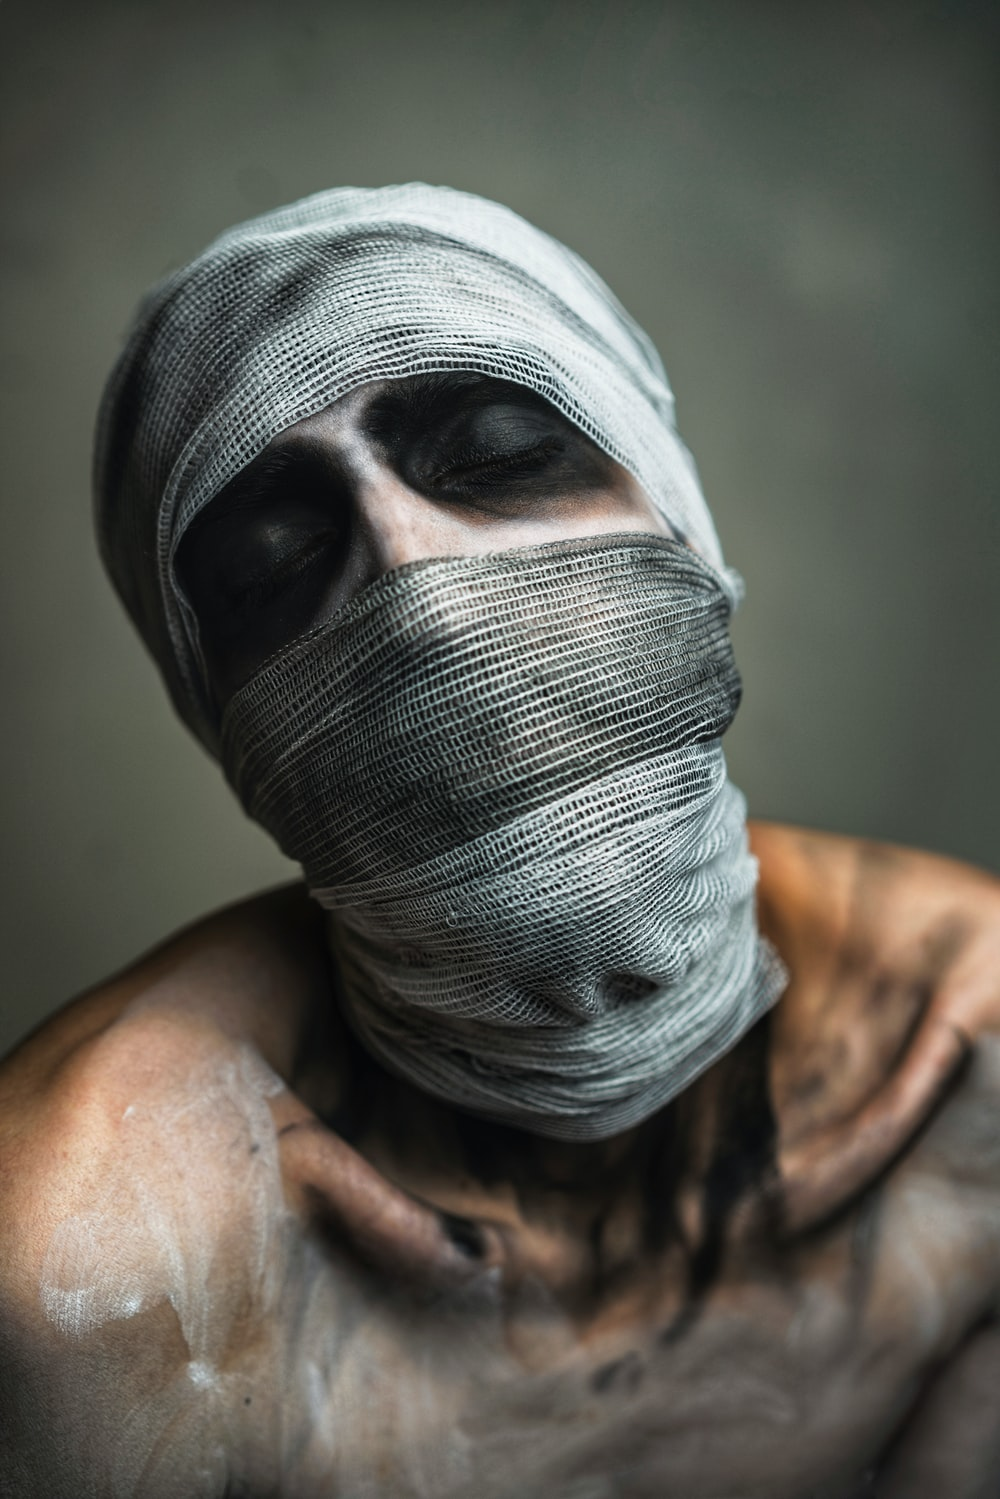 topless person with bandage on face